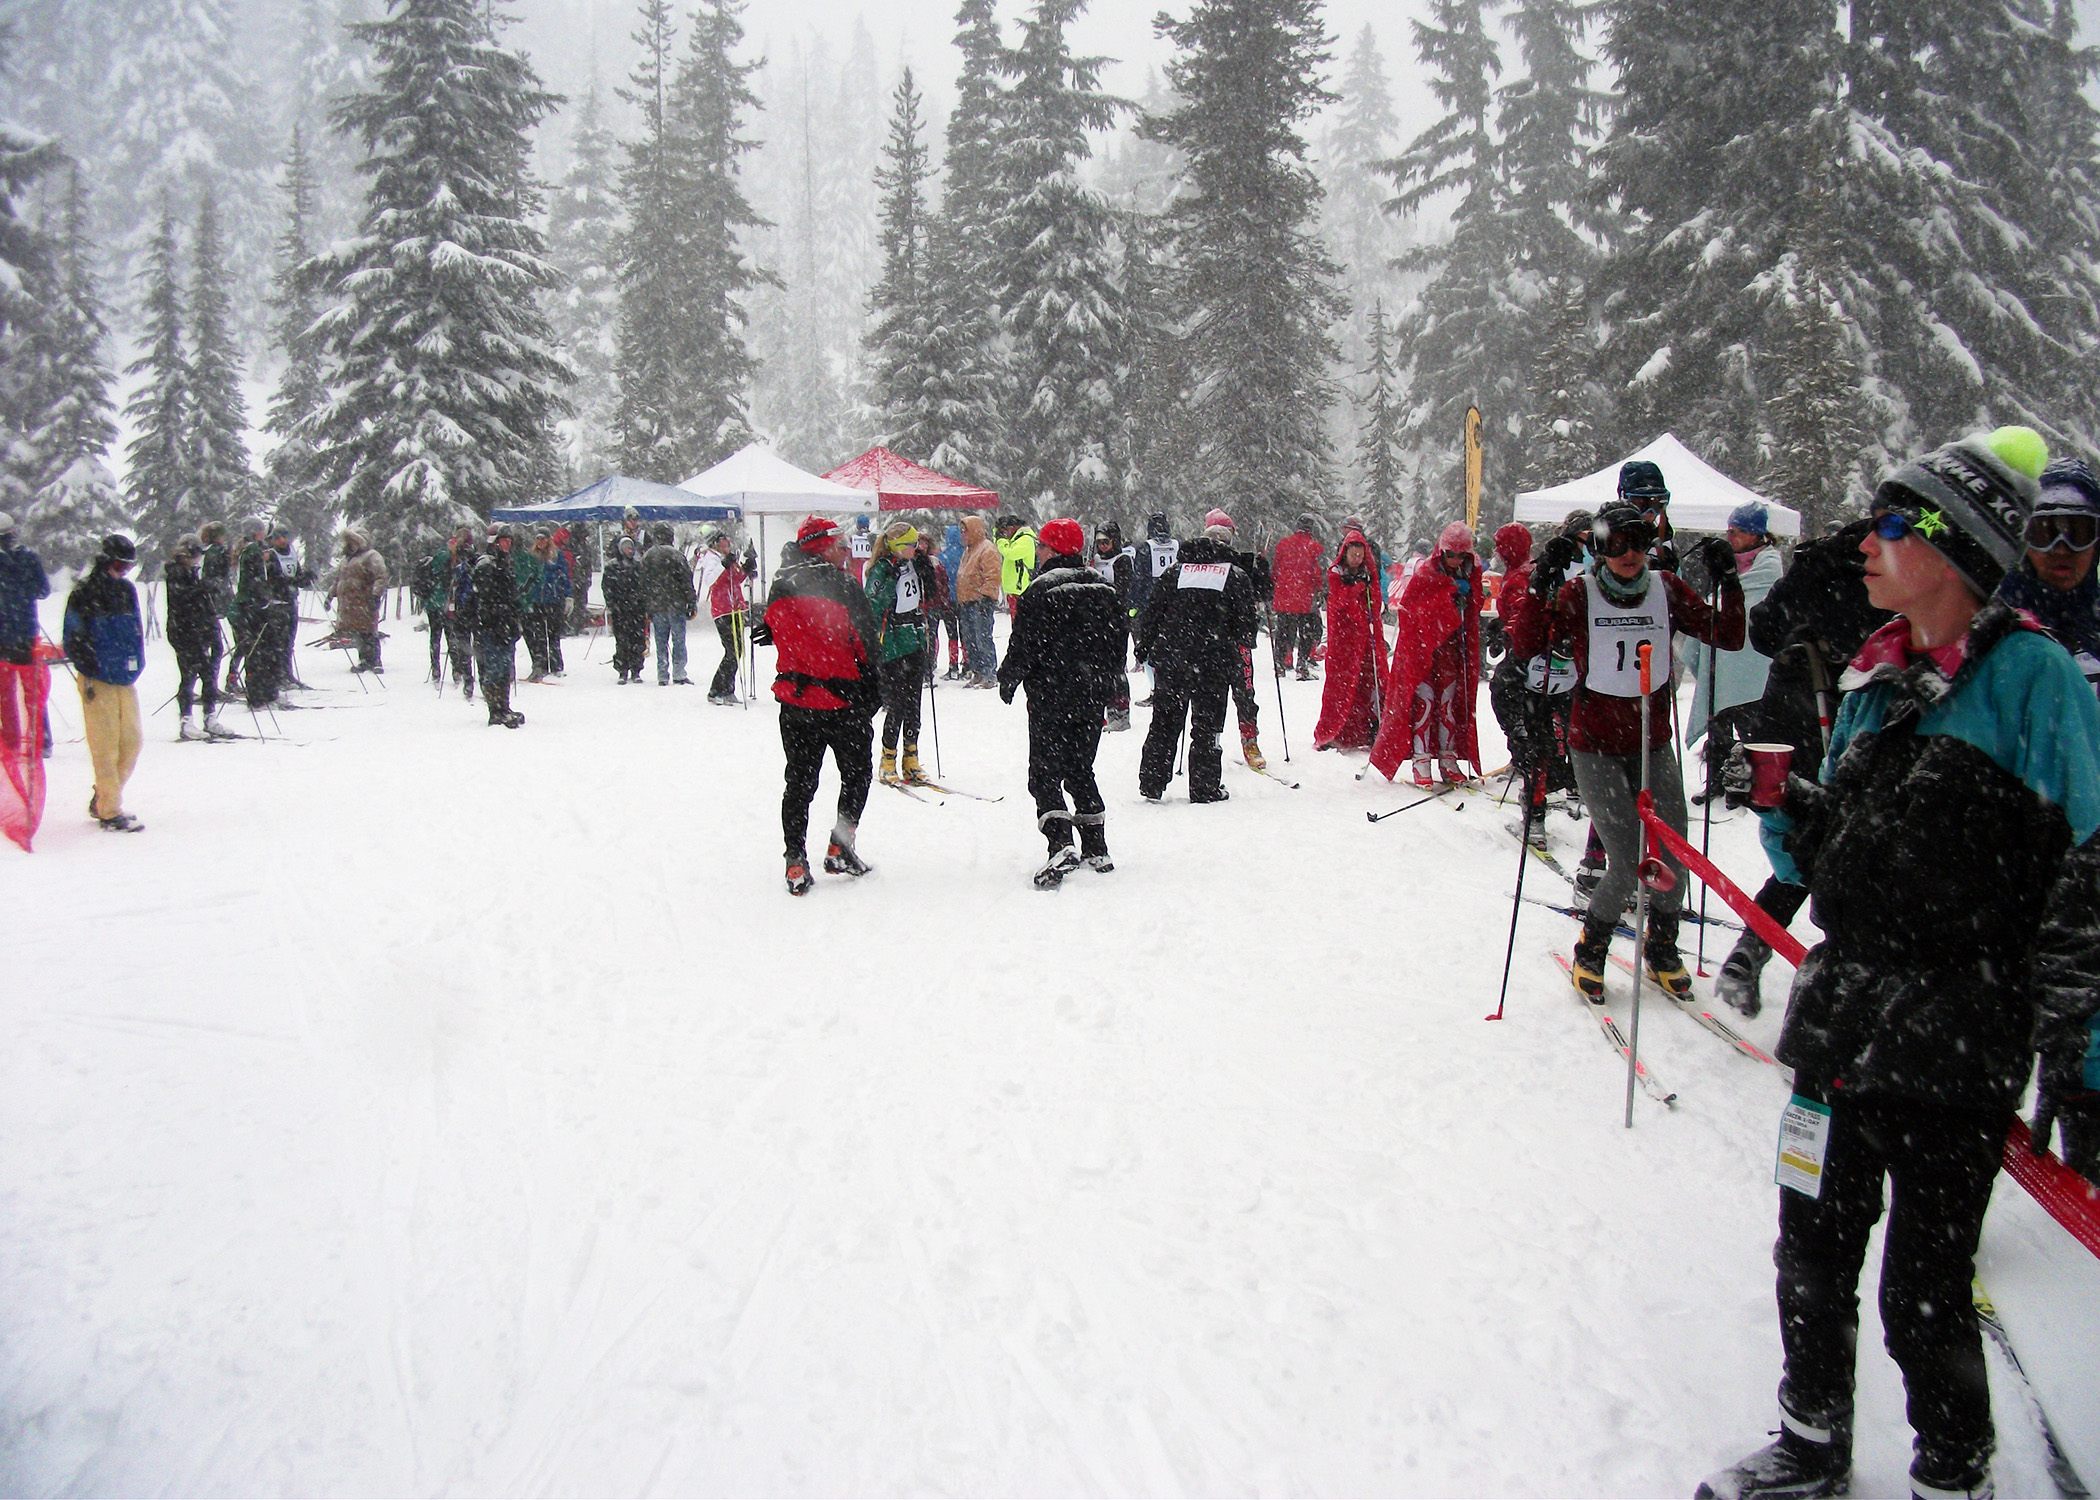 Competing Under the Snow